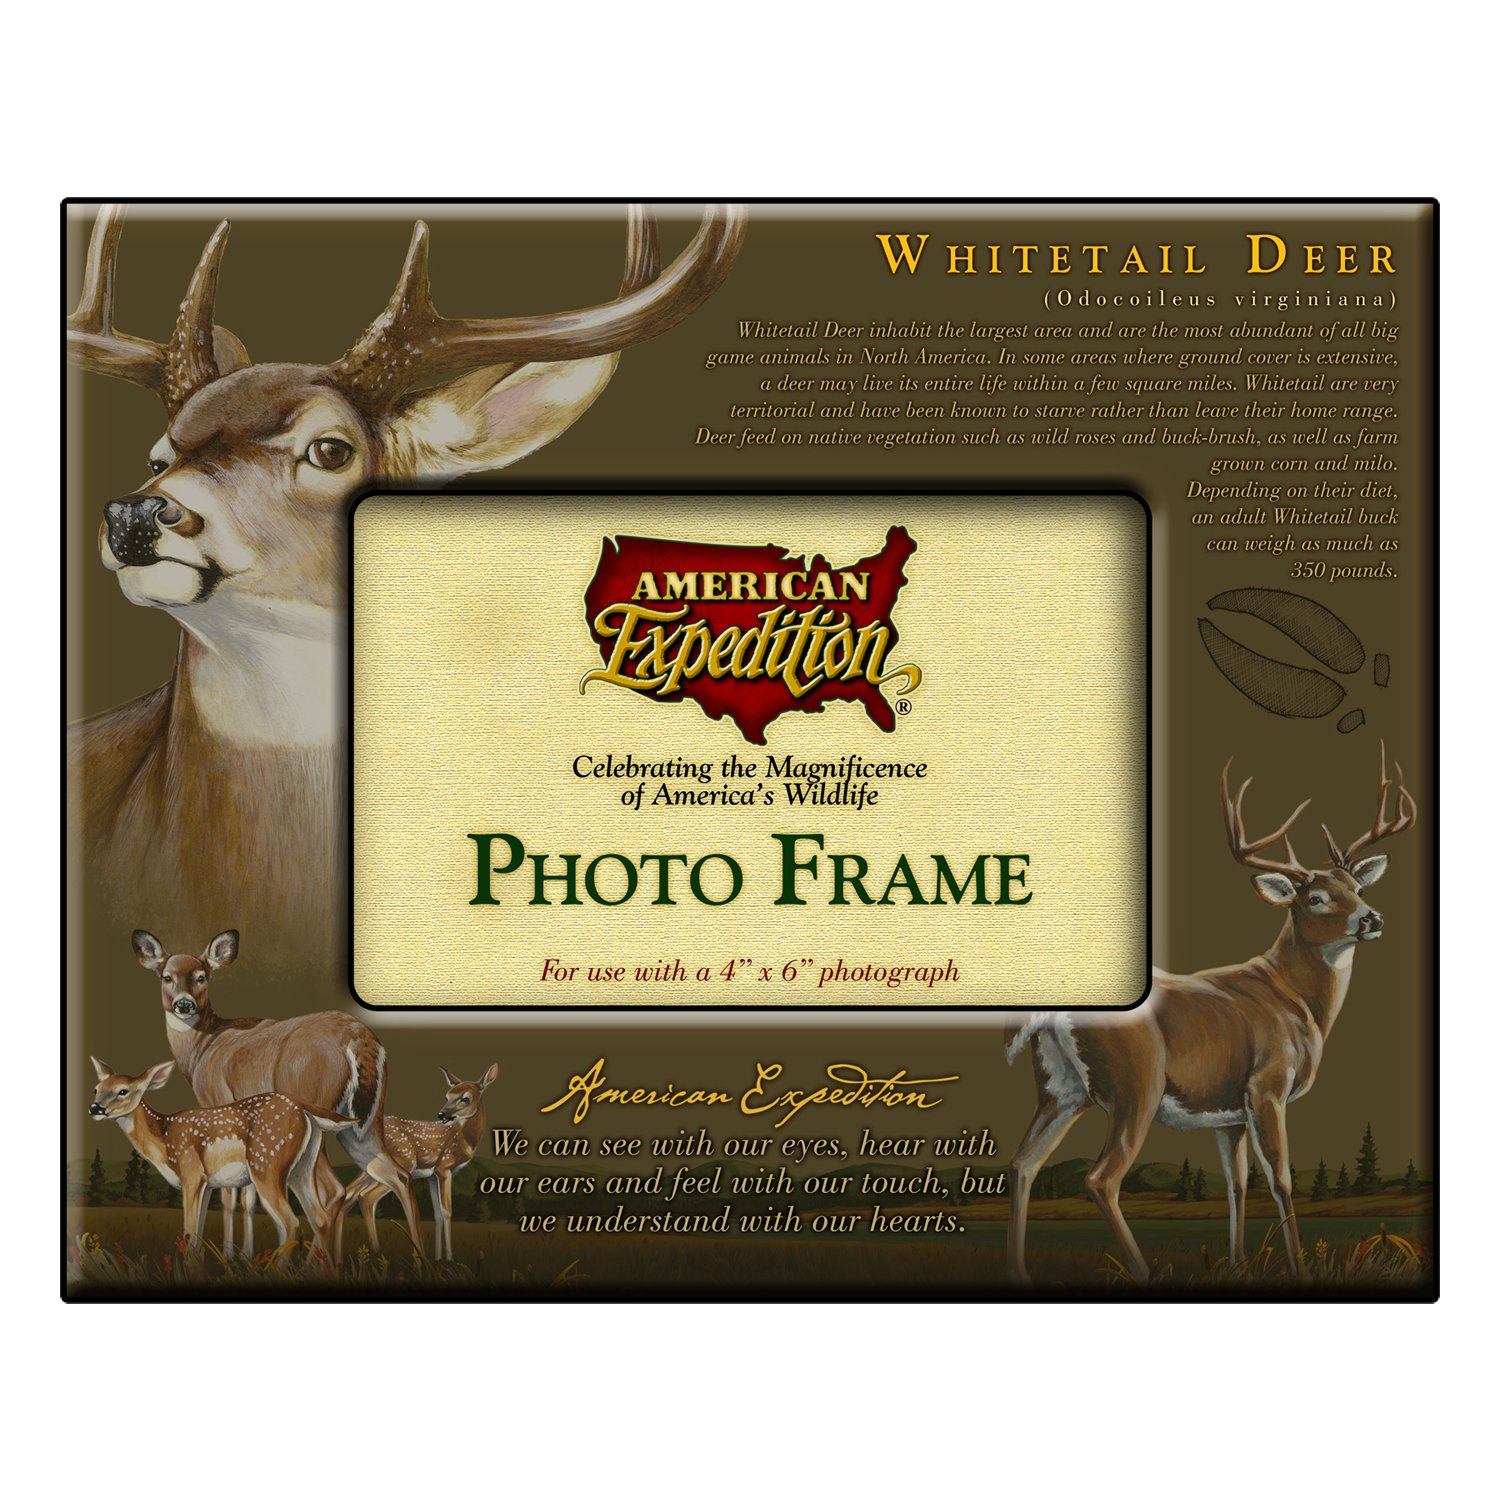 Amazon.com: American Expedition Photo Frame, Whitetail Deer: Sports ...